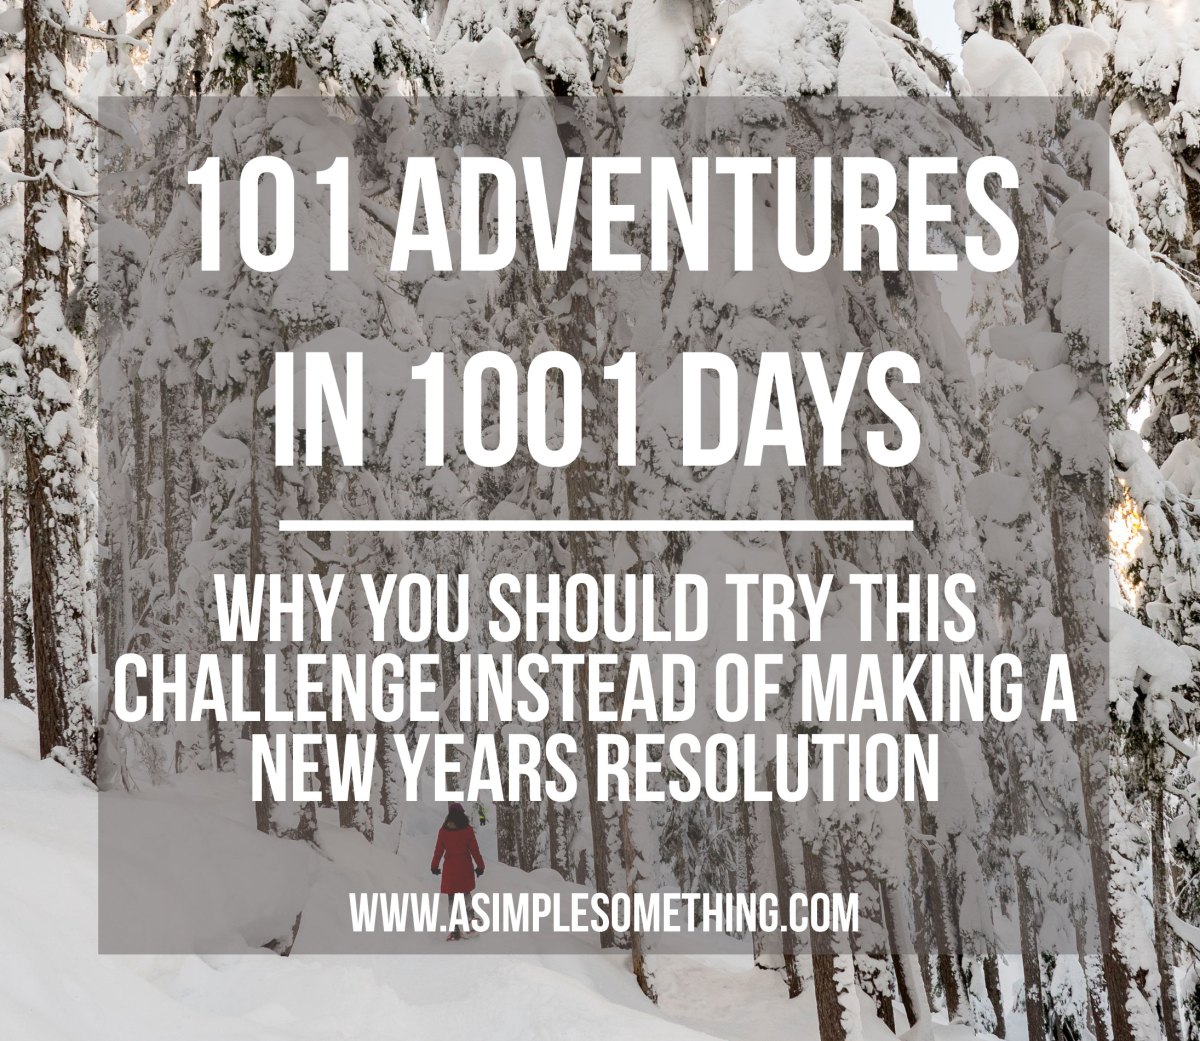 101 Adventures - Why You Should Try This Challenge instead of Making a New Years Resolution